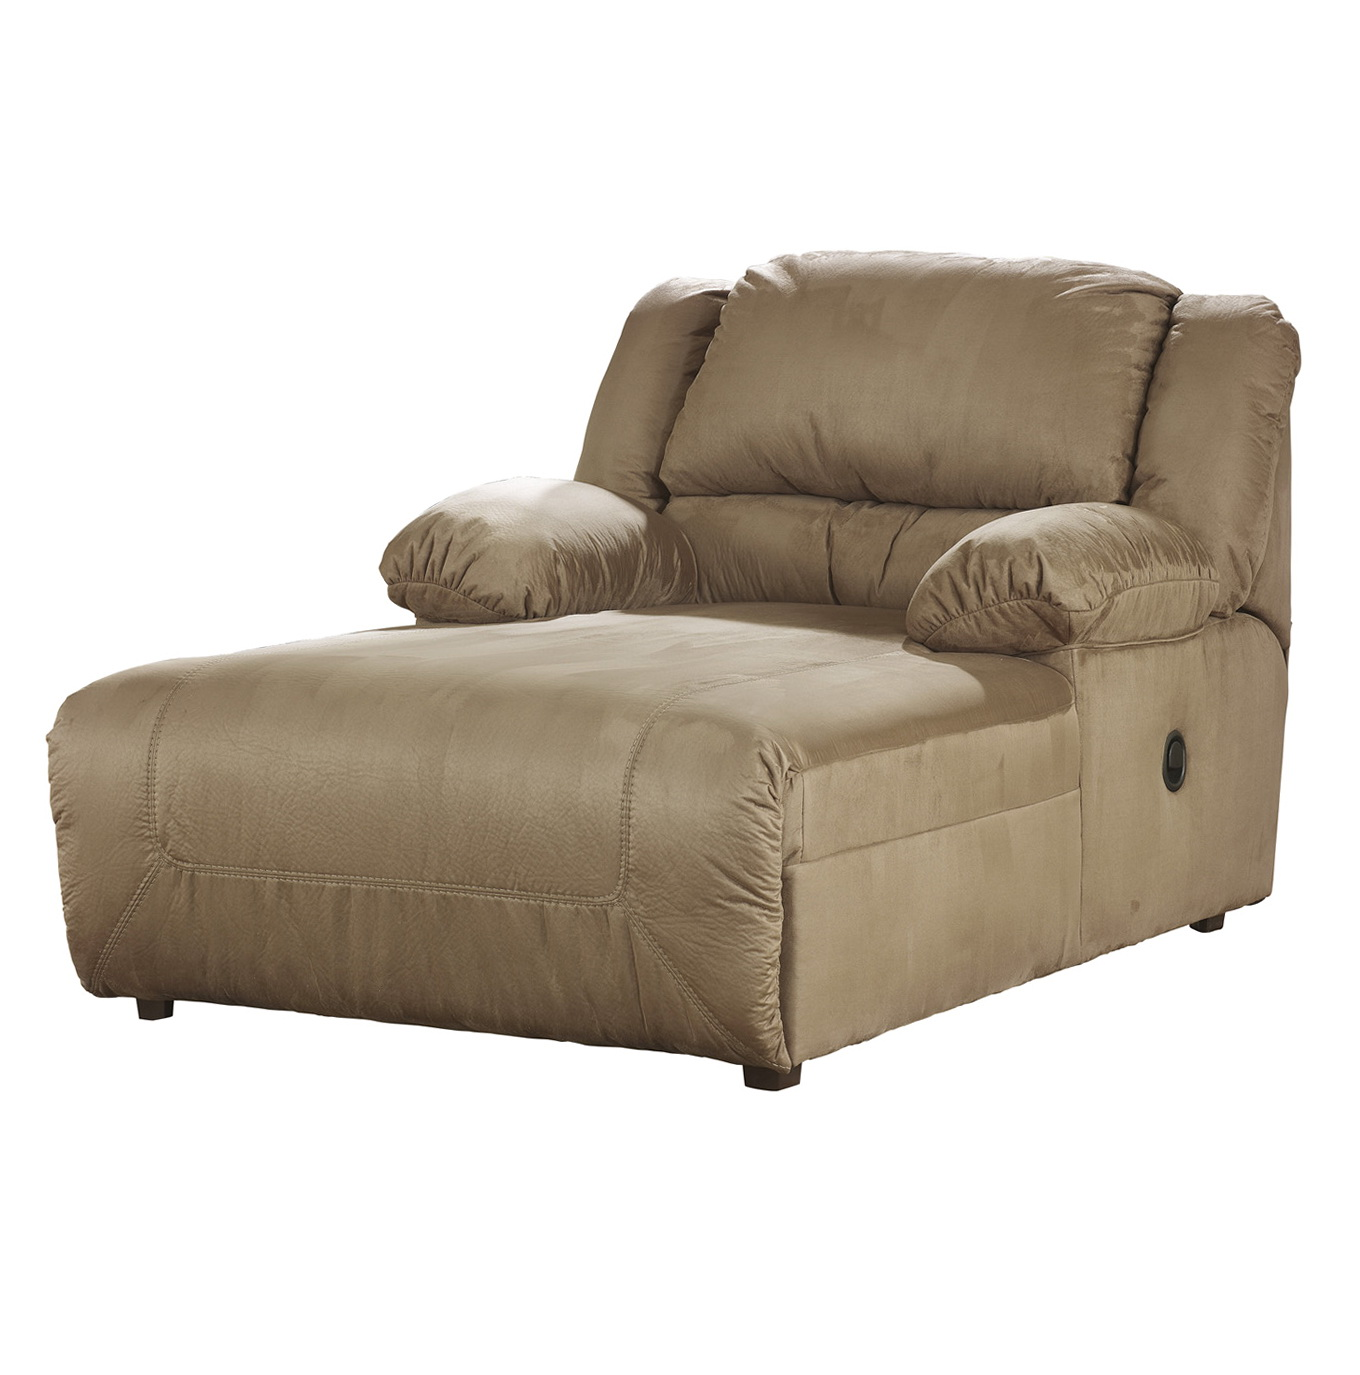 Ashley furniture chaise lounge couch home design ideas for Ashley furniture chaise lounge couch